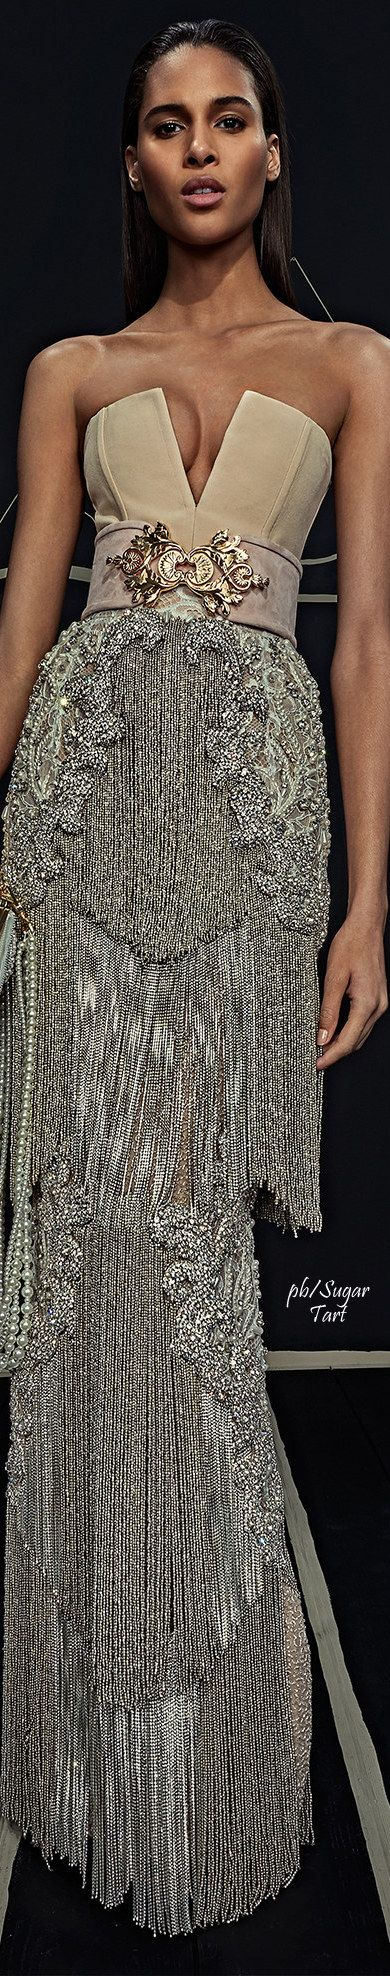 Balmain Pre-Fall 2016.. Again with the detail, I'm in love!